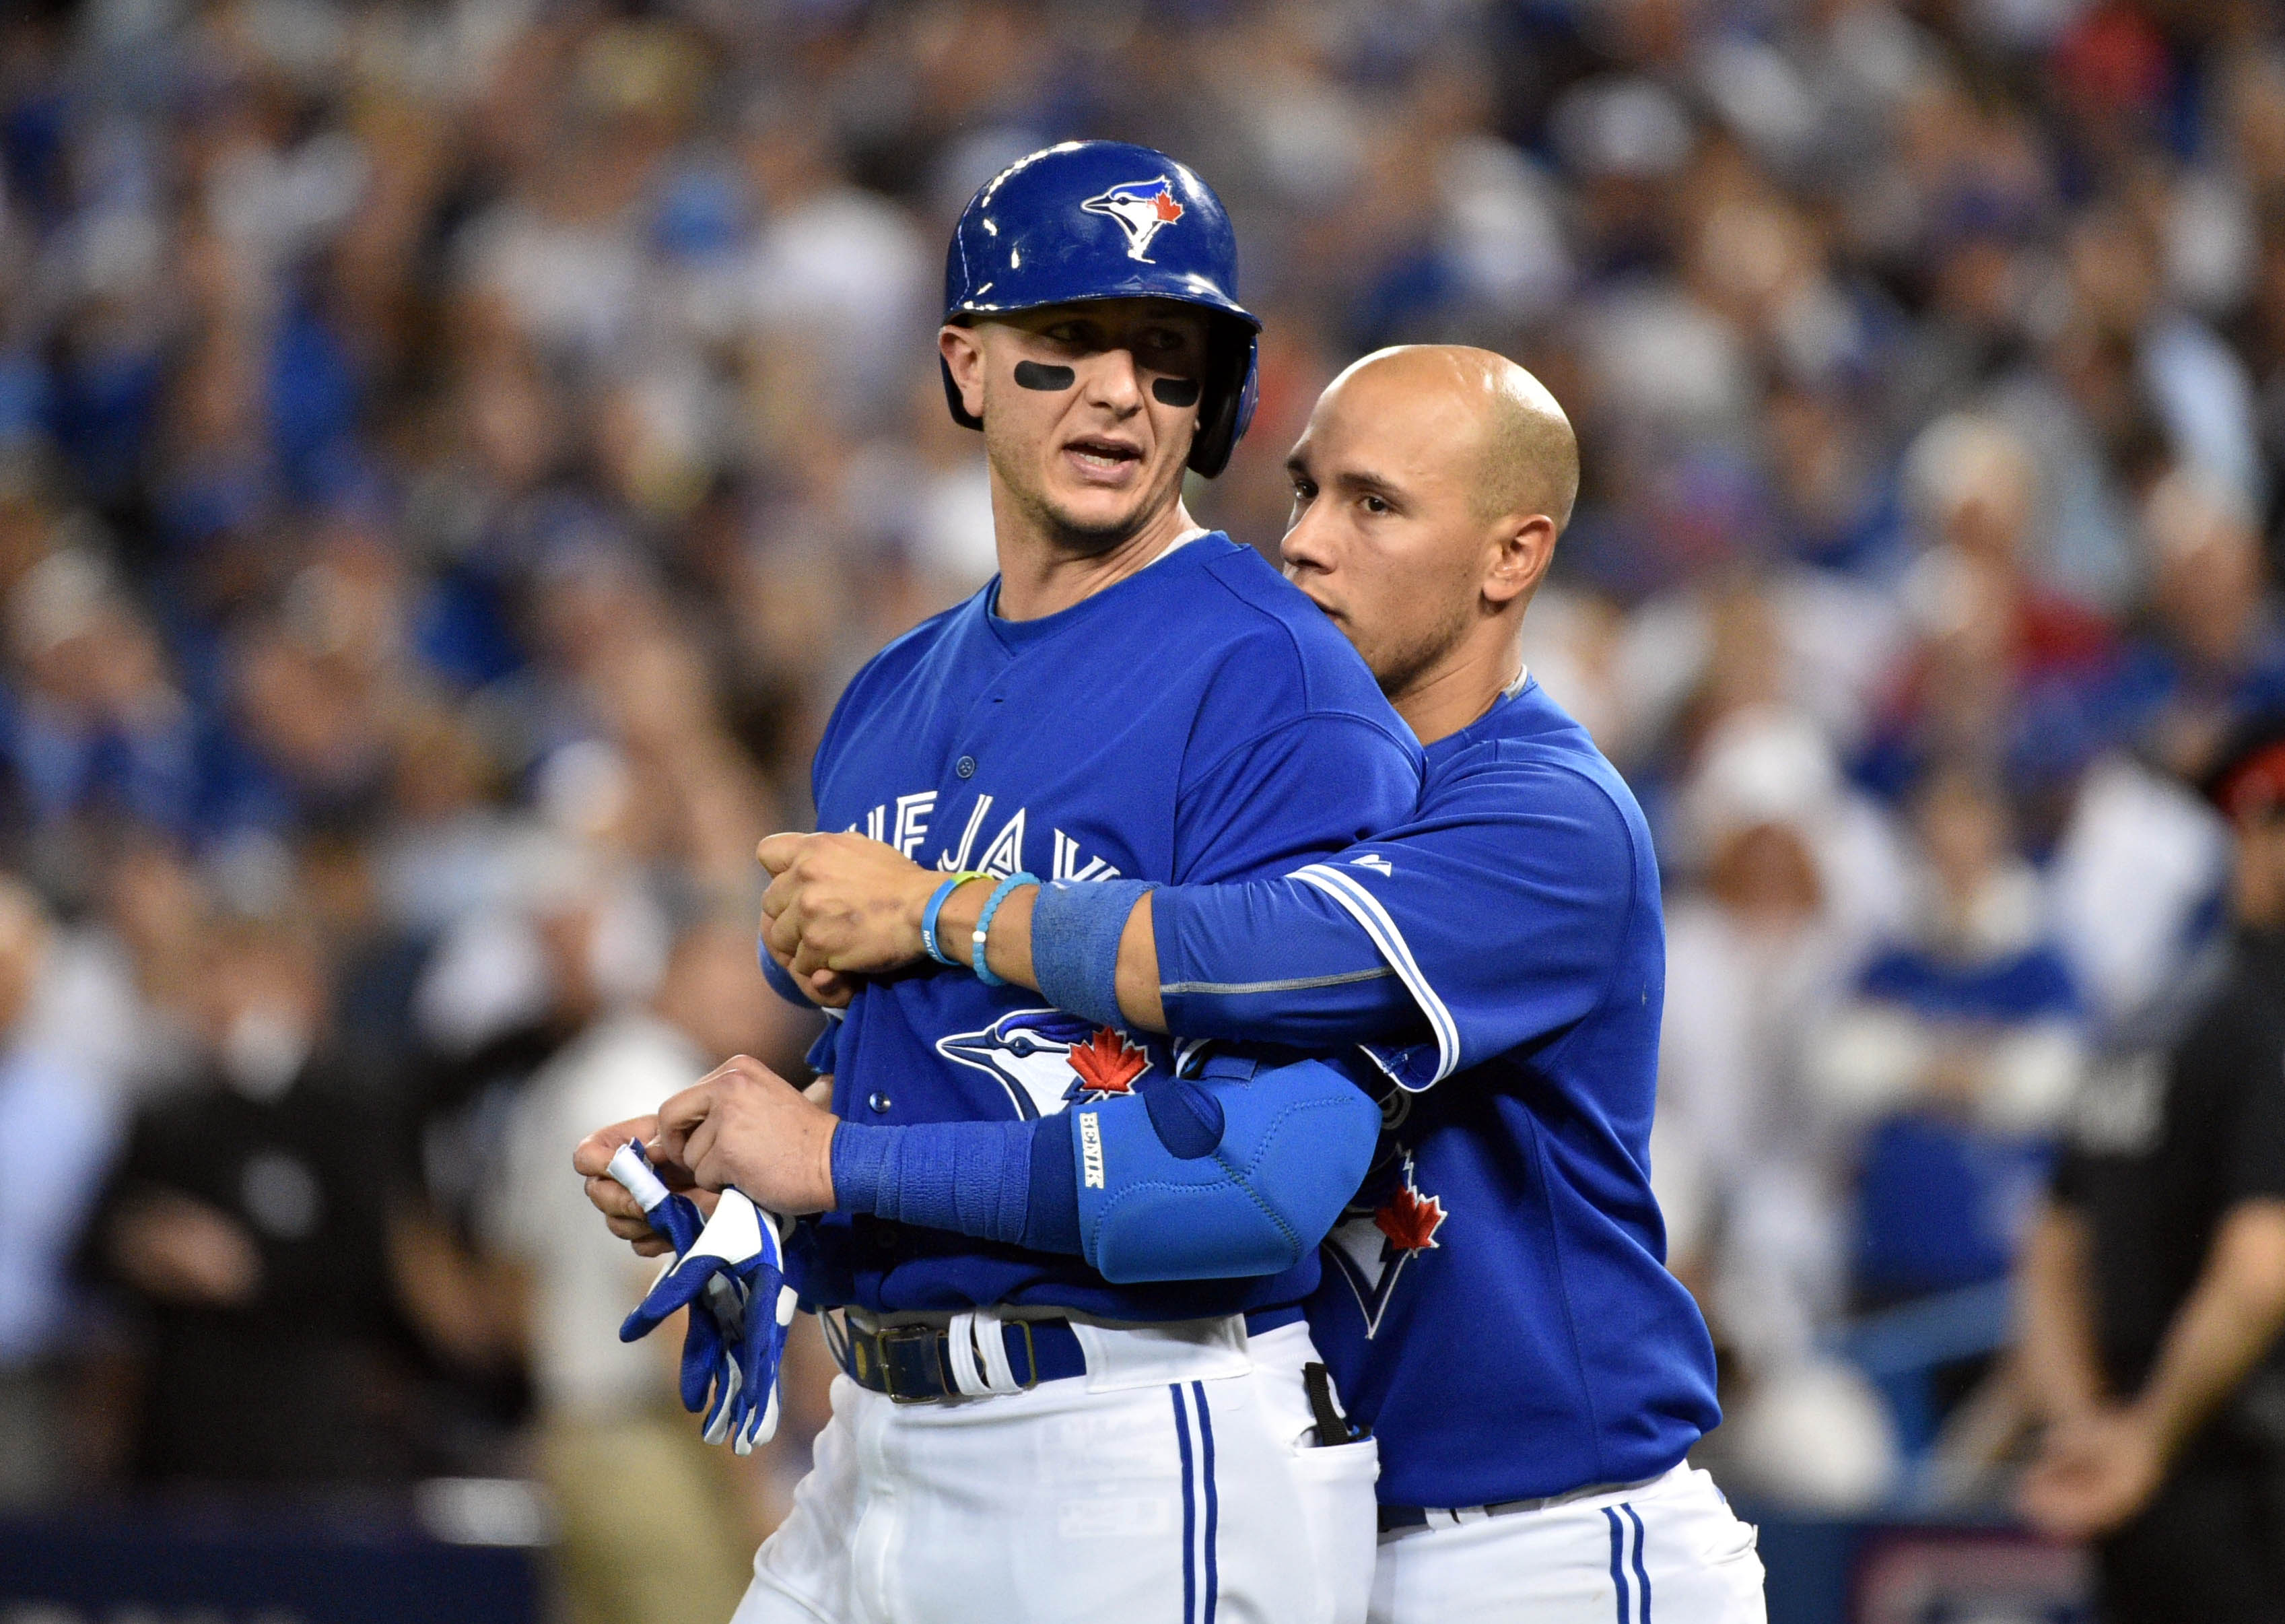 Blue Jays shortstop Troy Tulowitzki (left) is restrained by a teammate as the benches clear following a wild 7th inning. (Photo: Nick Turchiaro, USA TODAY Sports)